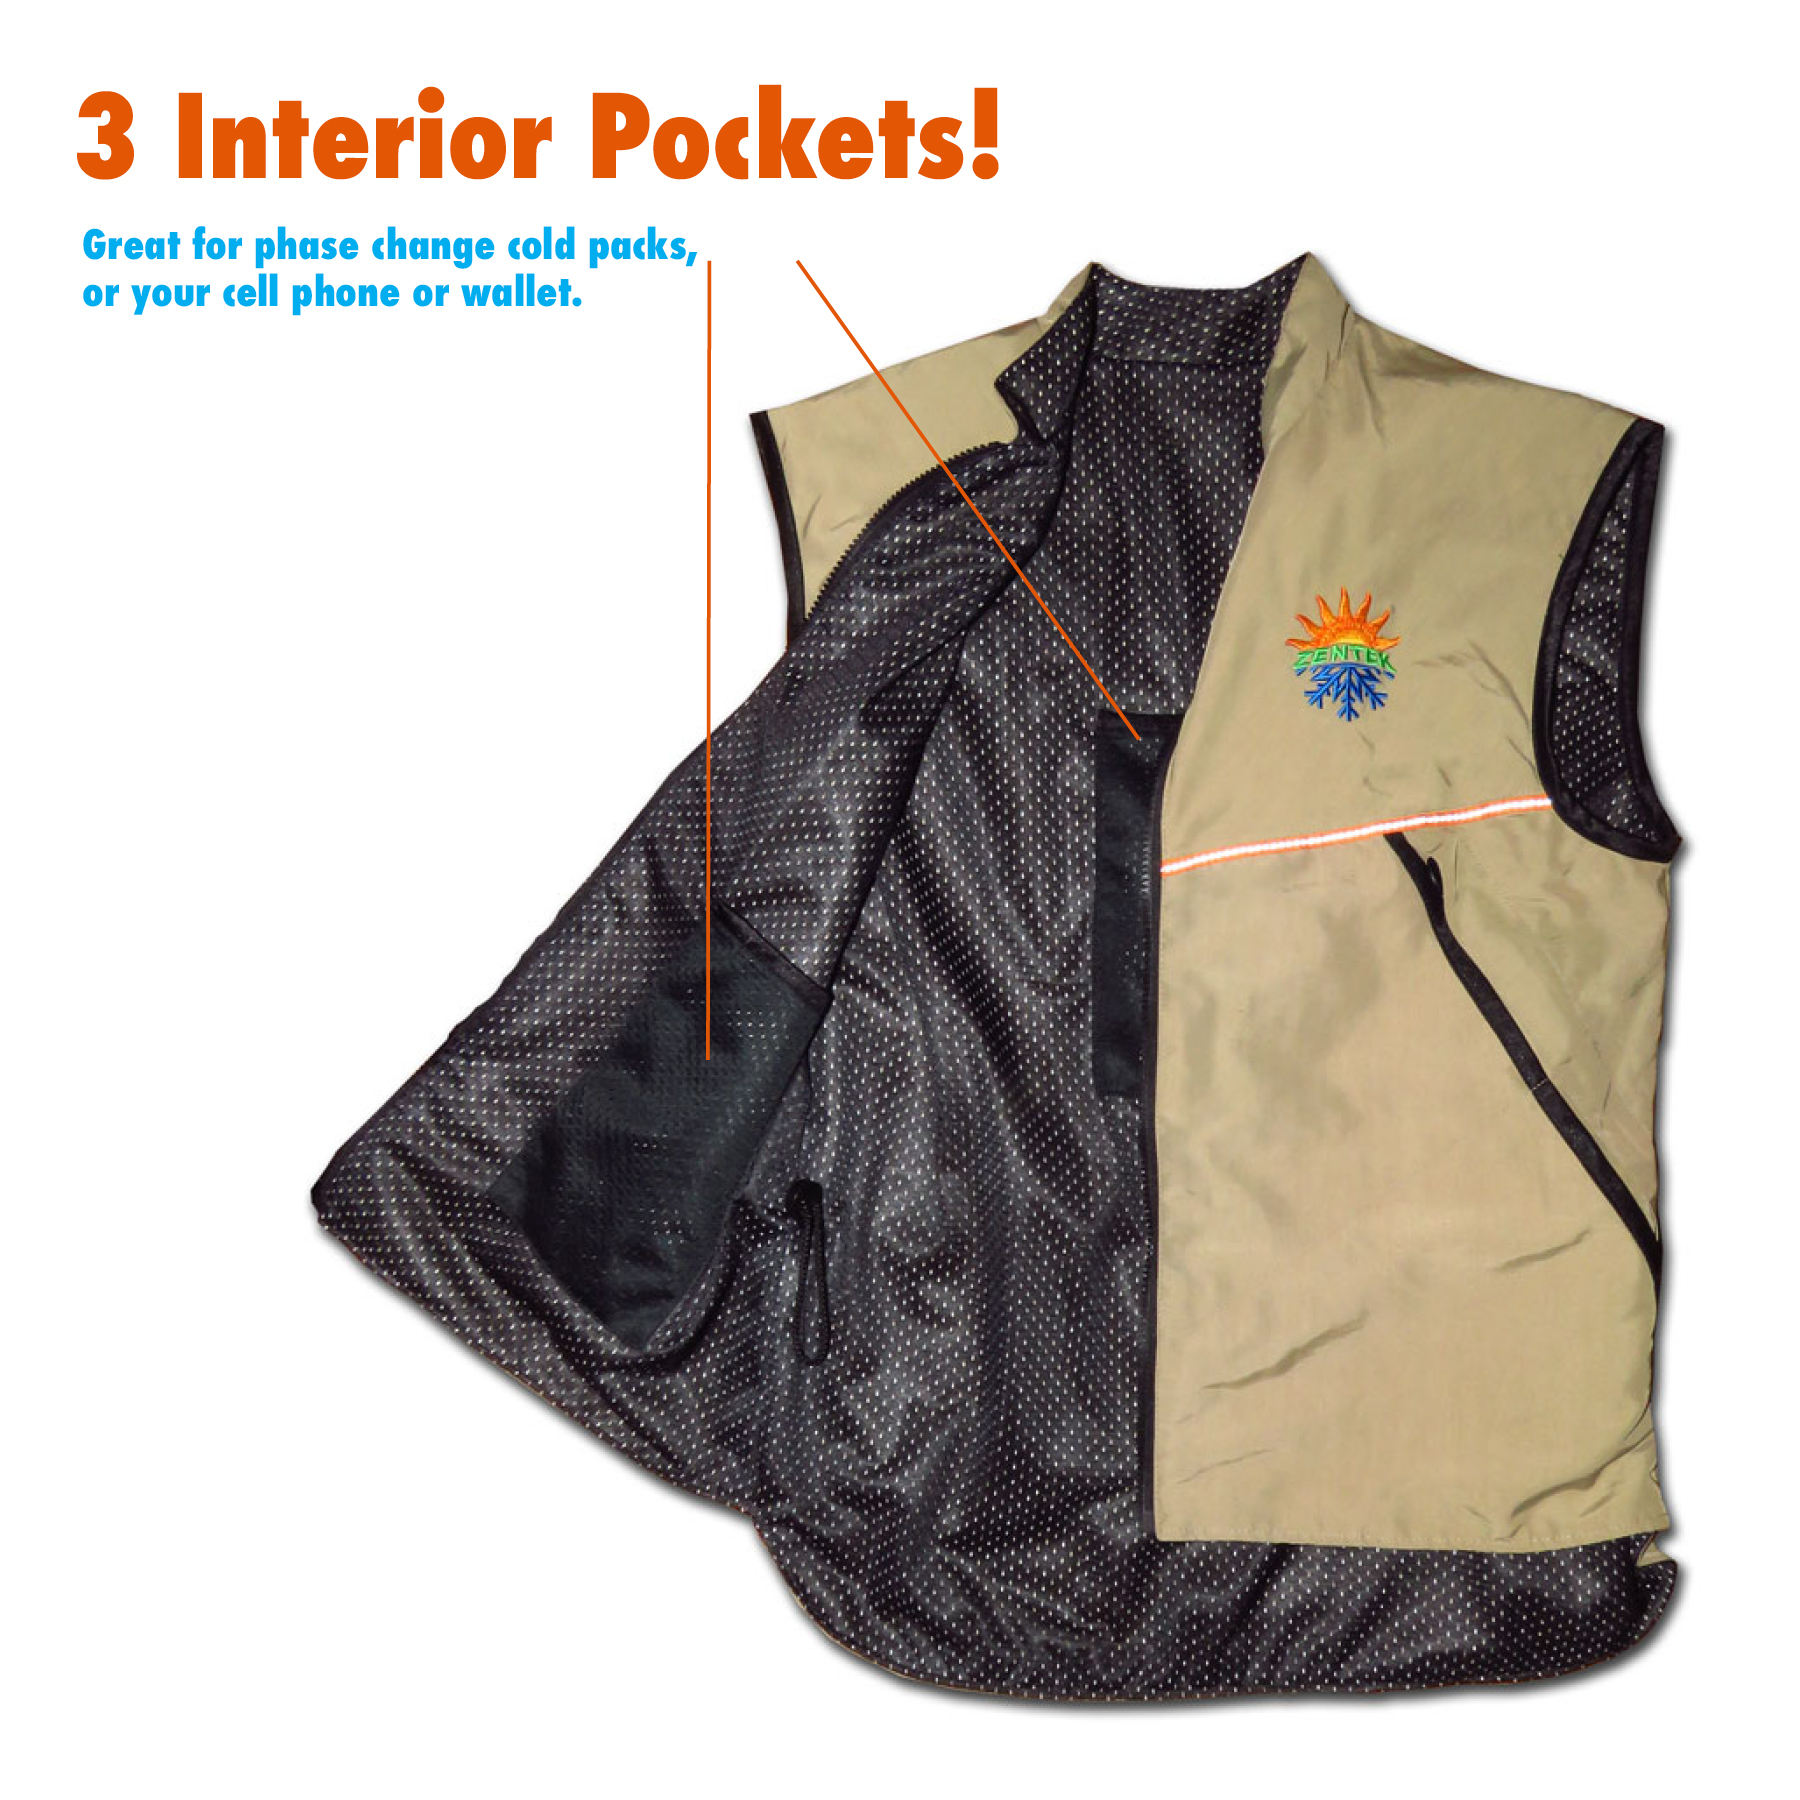 vest-insode-pockets.jpg